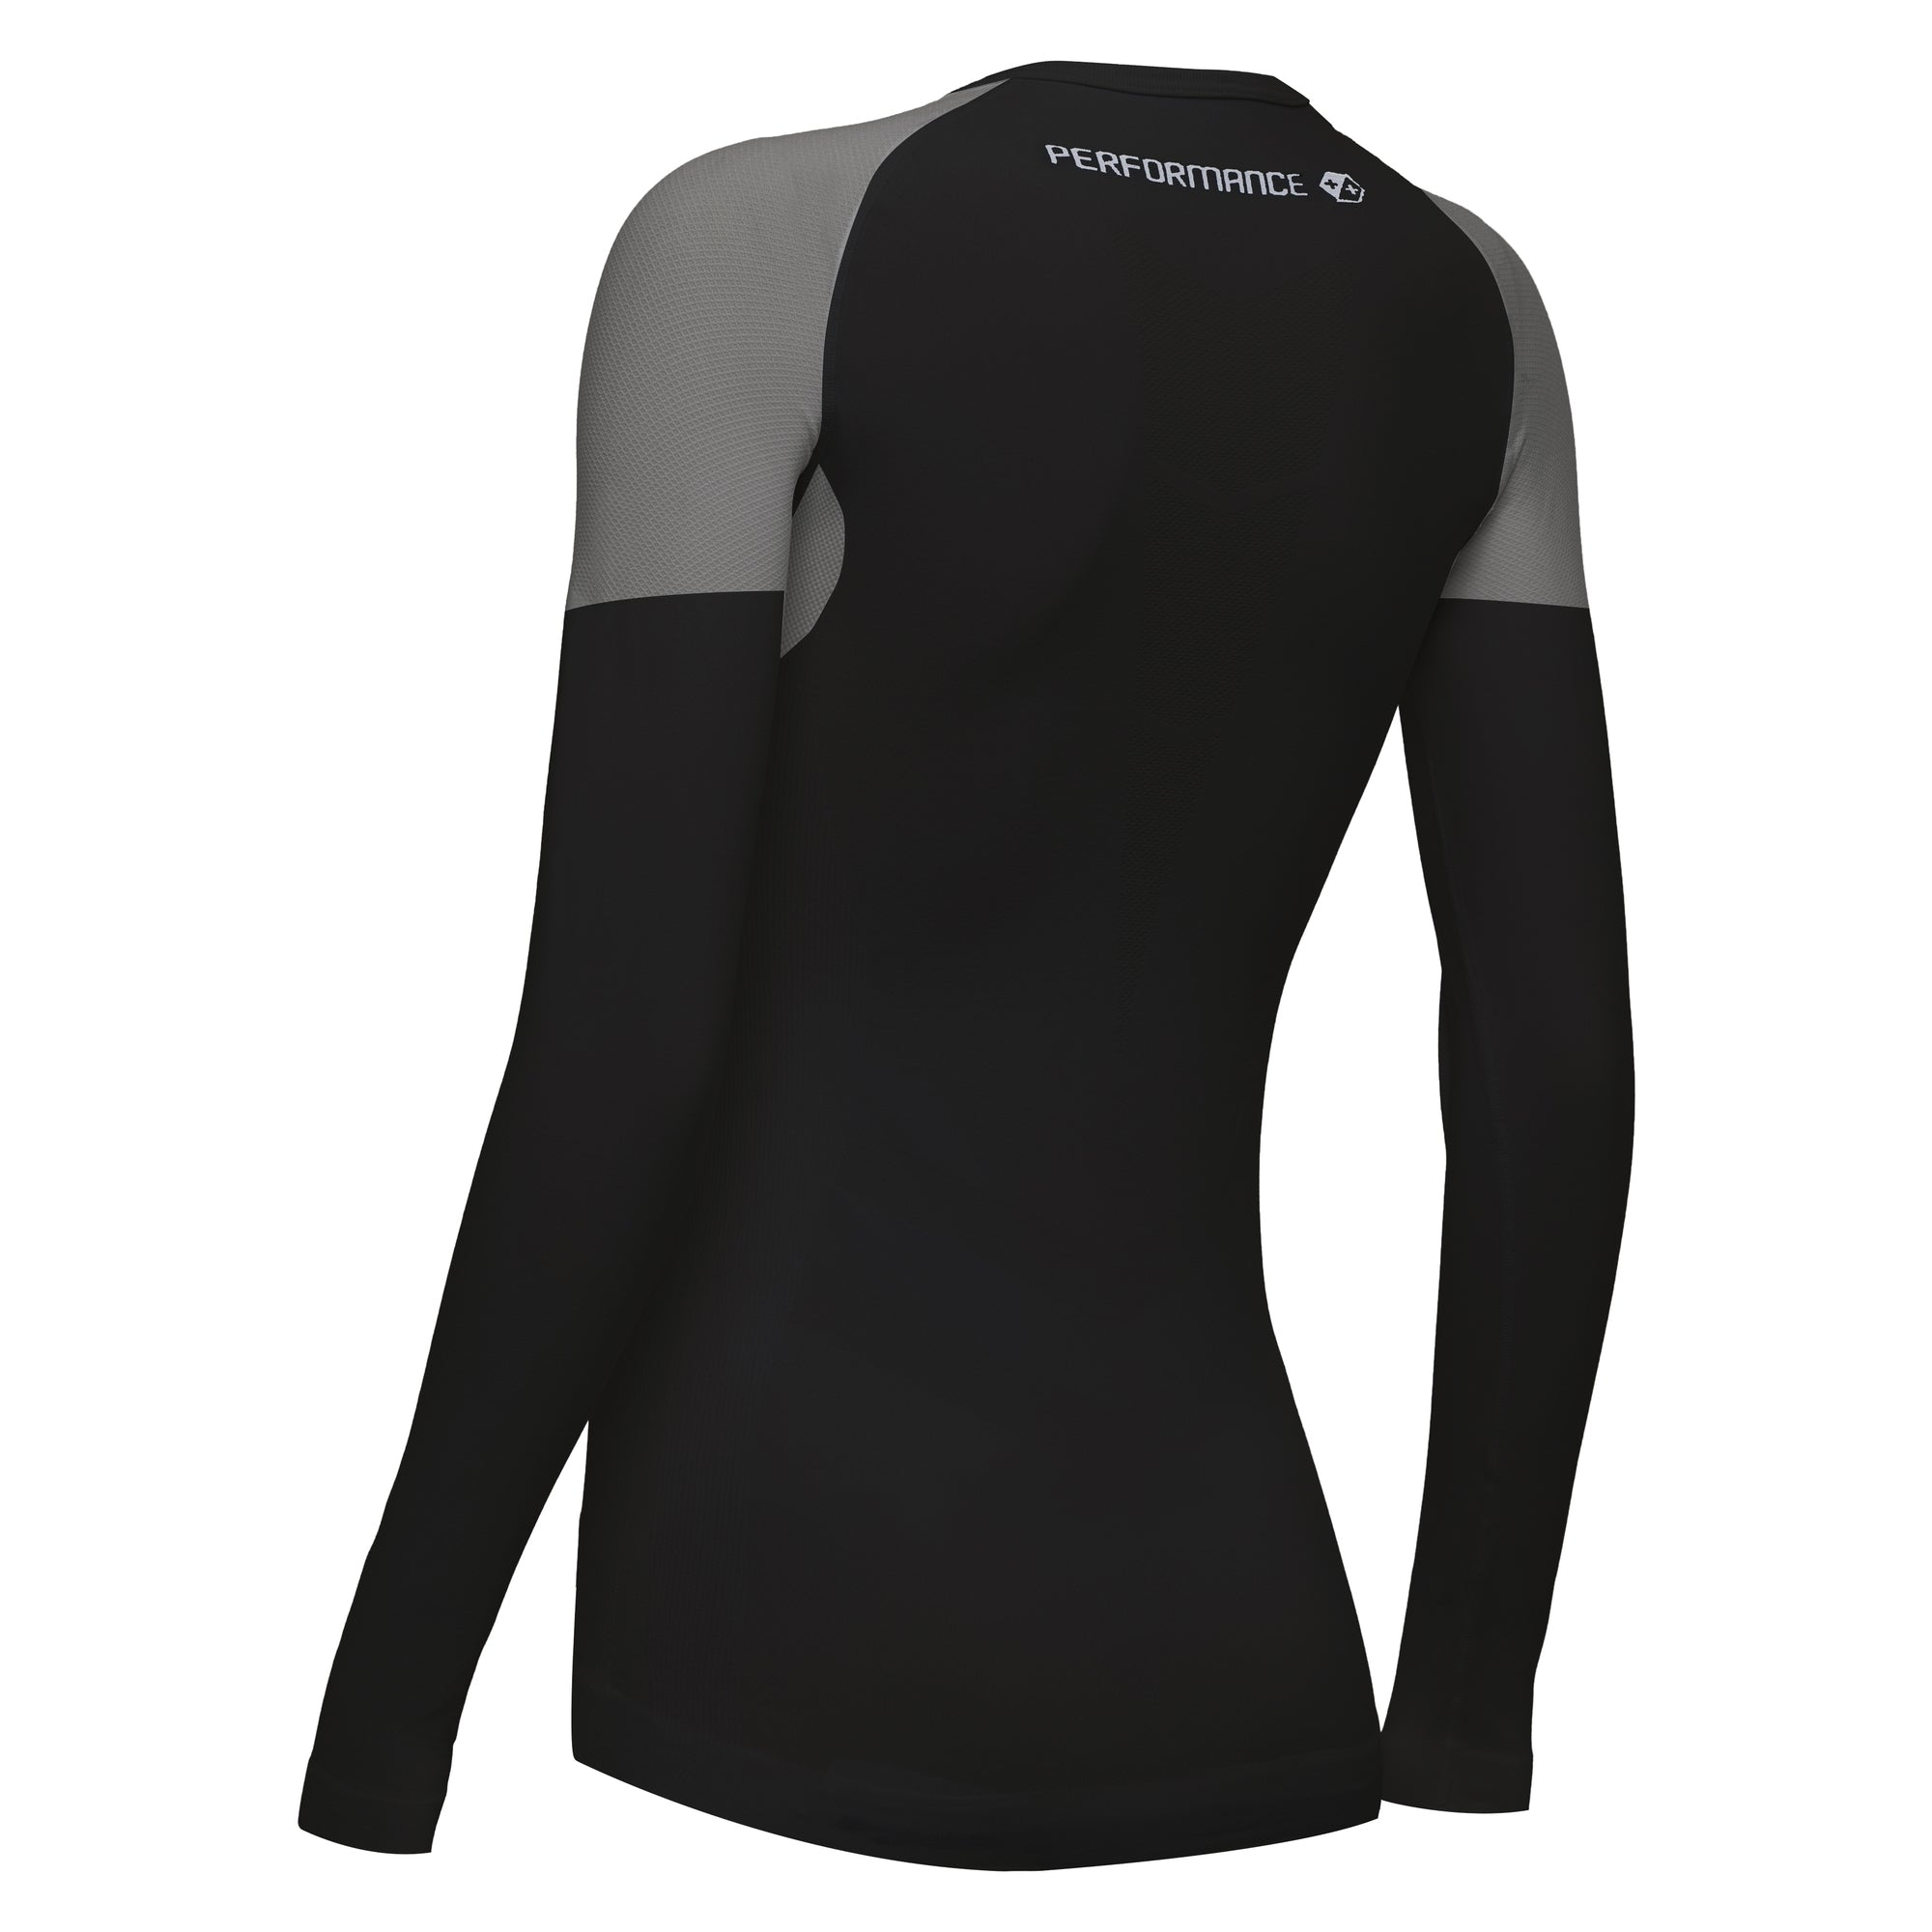 Macron Performance Women's Compression Top Long-Sleeve - Final Sale - ITA Sports Shop